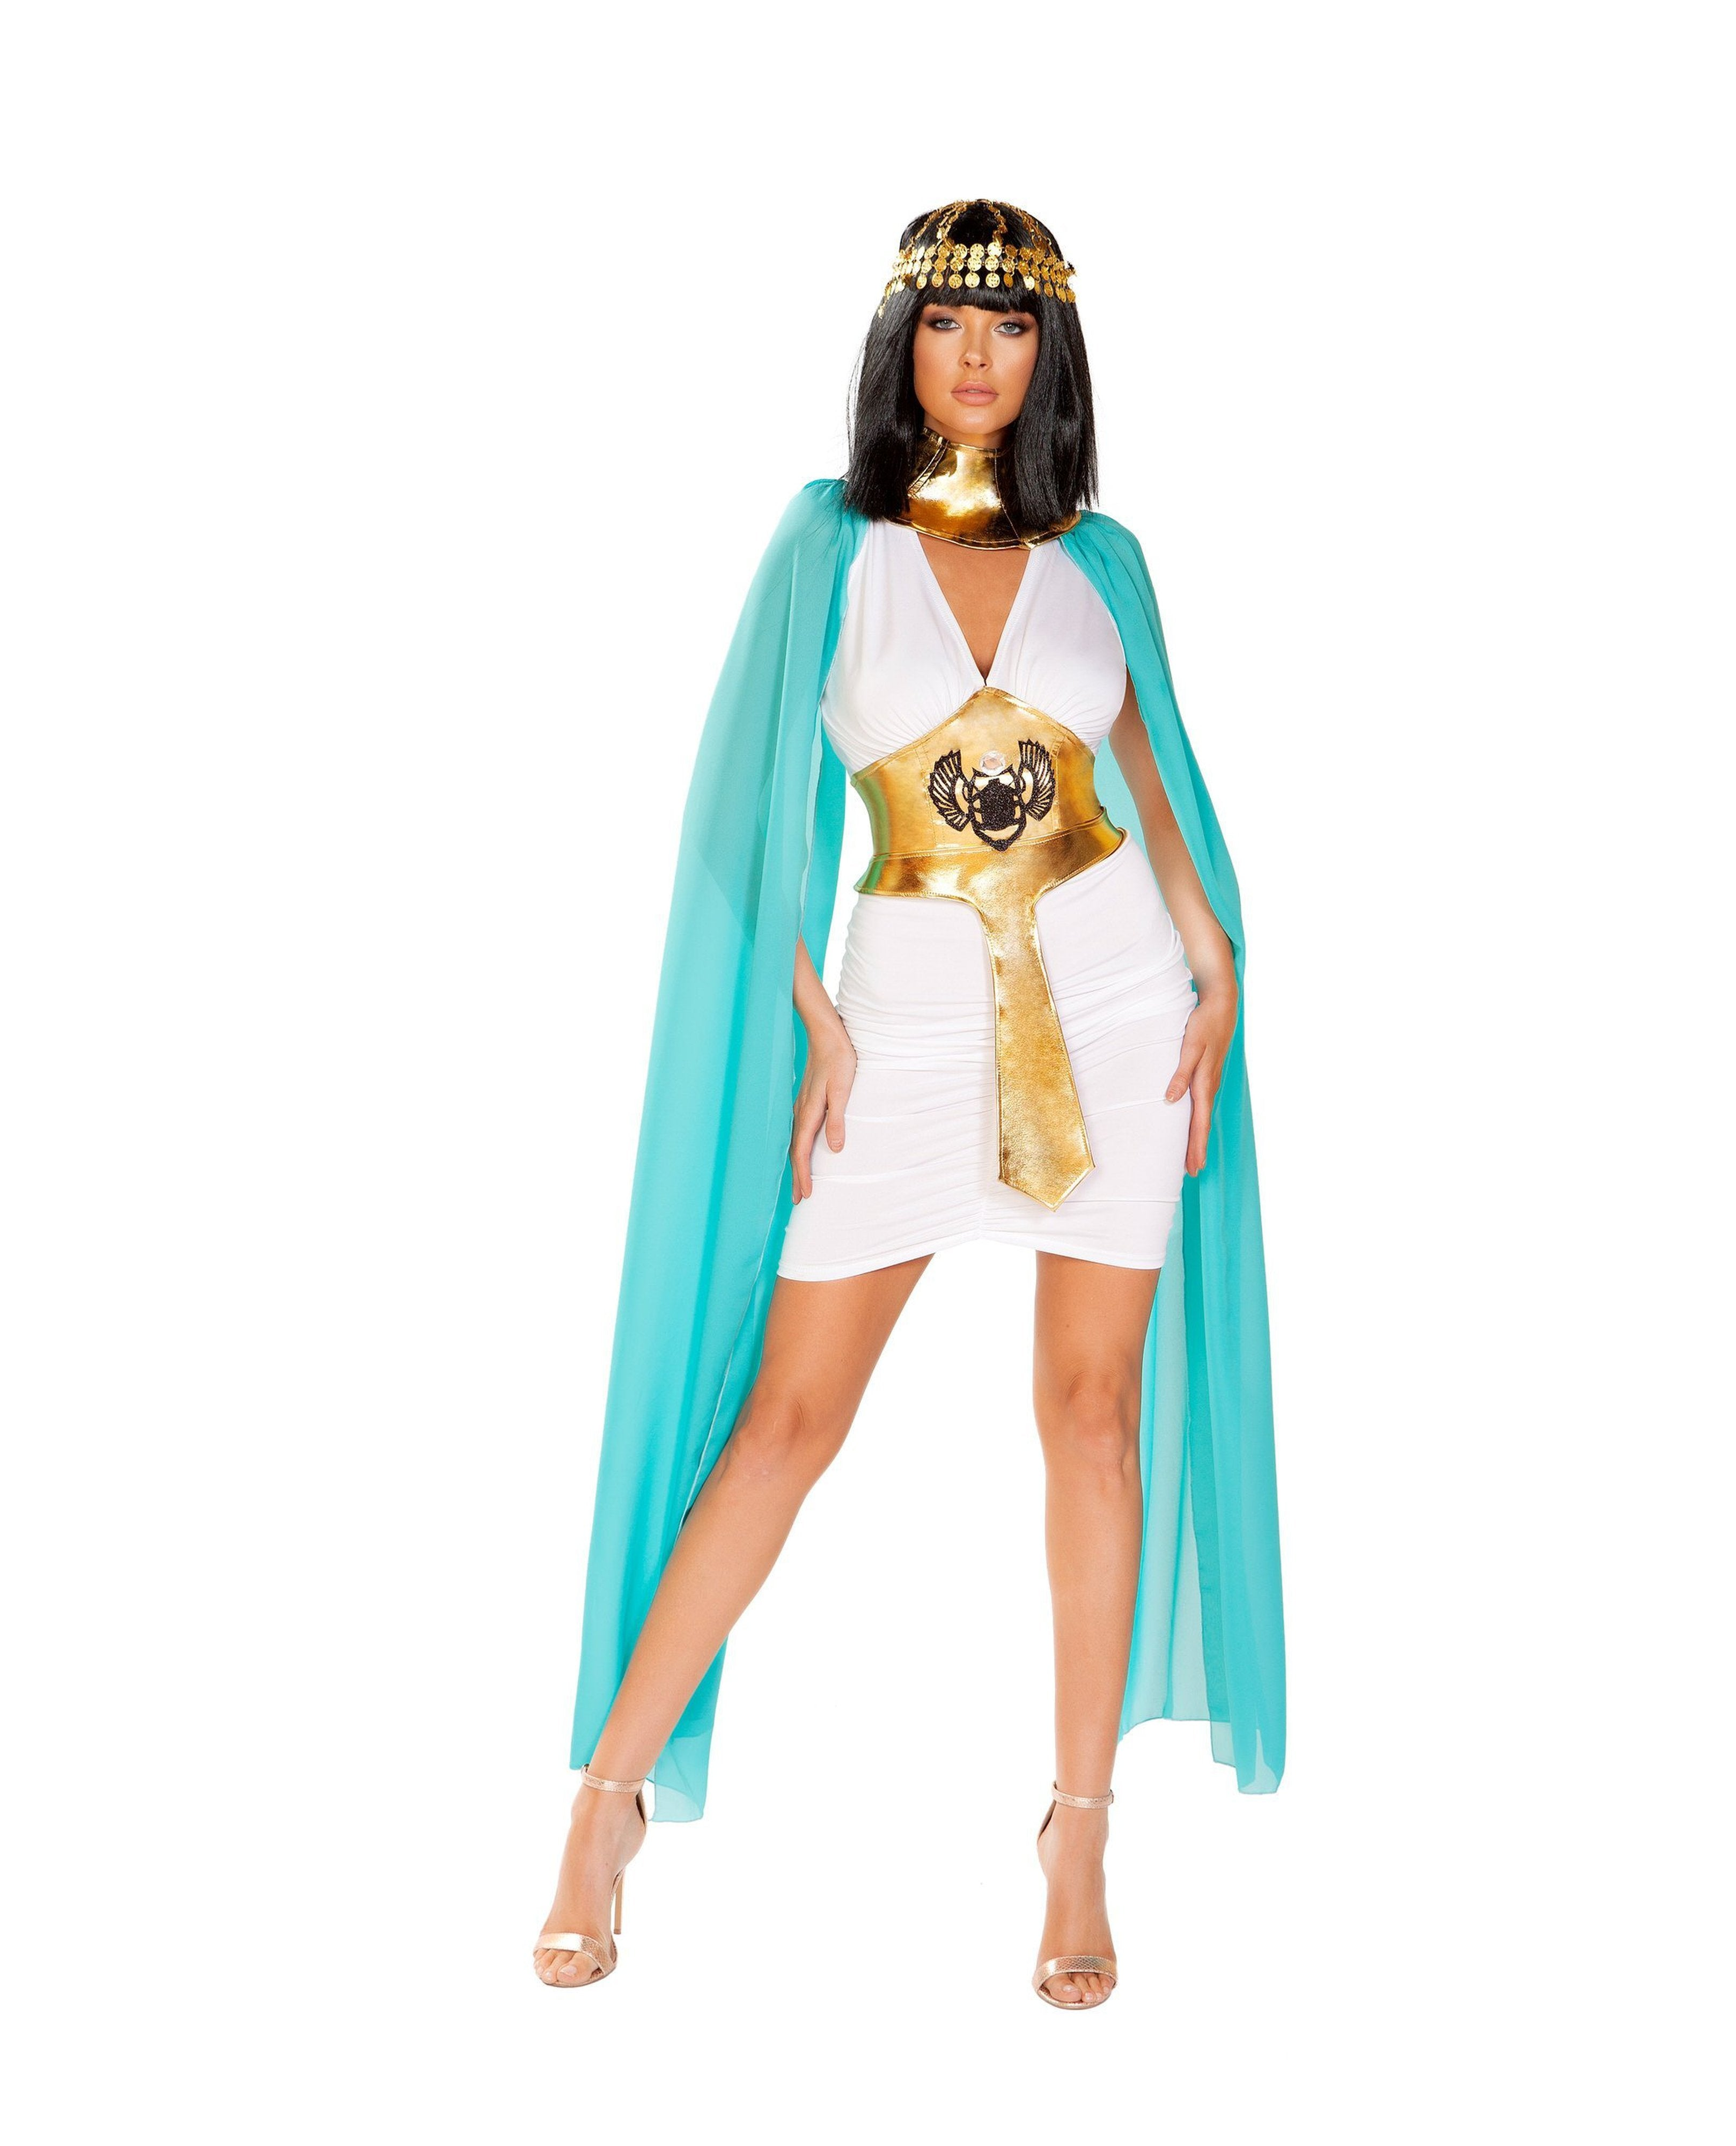 Egyptian Warrior Queen Costume costumes Size SmallColor White/Blue/GoldNakees